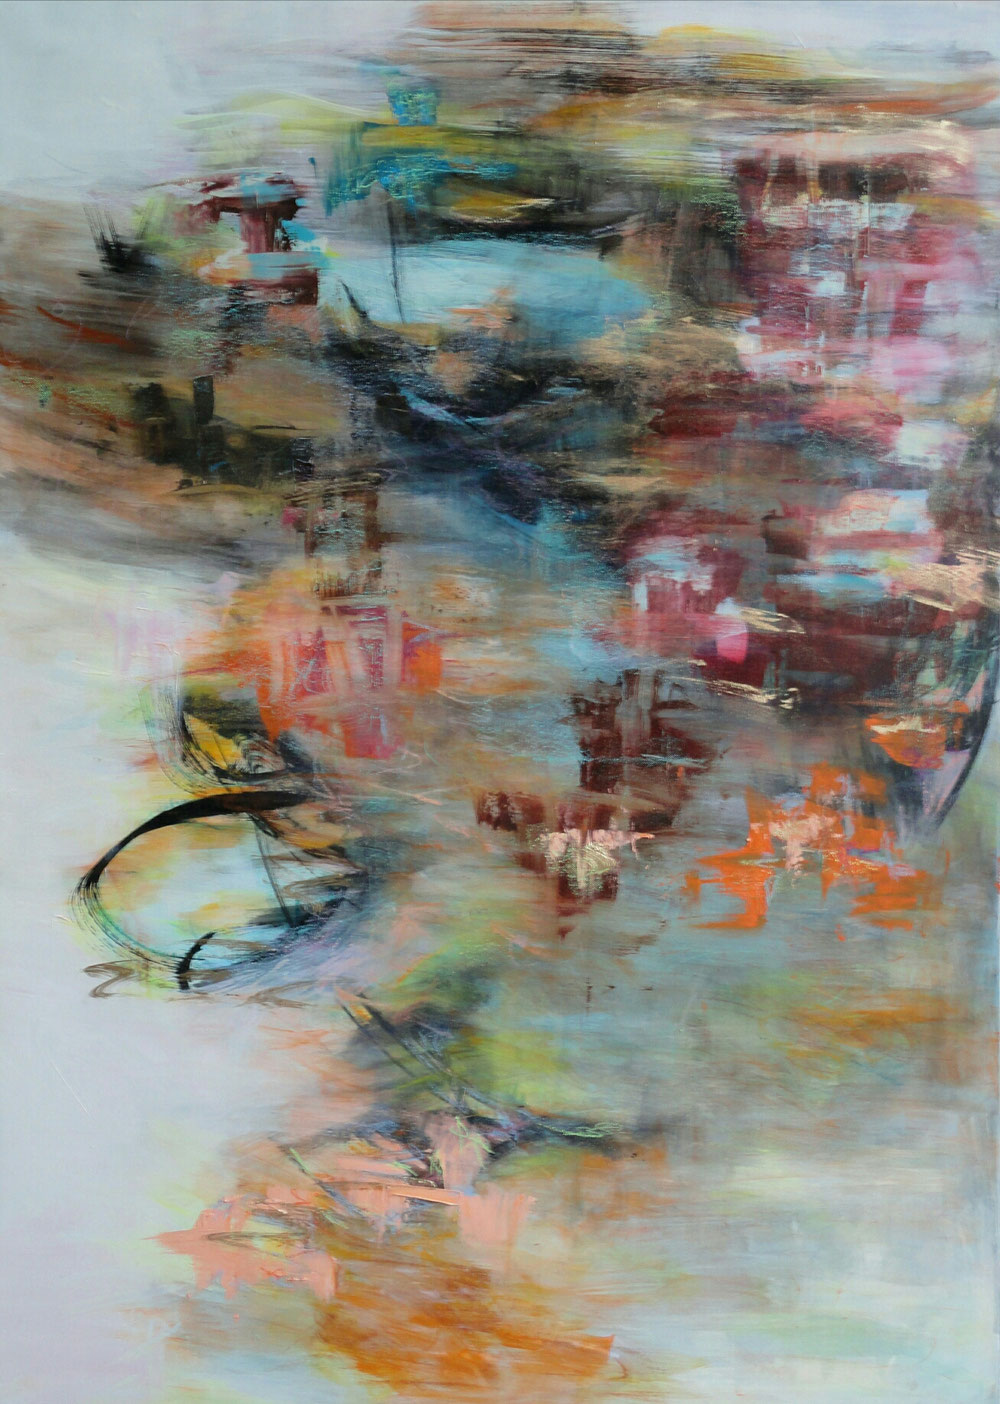 Reflections in the harbour, 105 x 75, mixed media on canvas / private collection